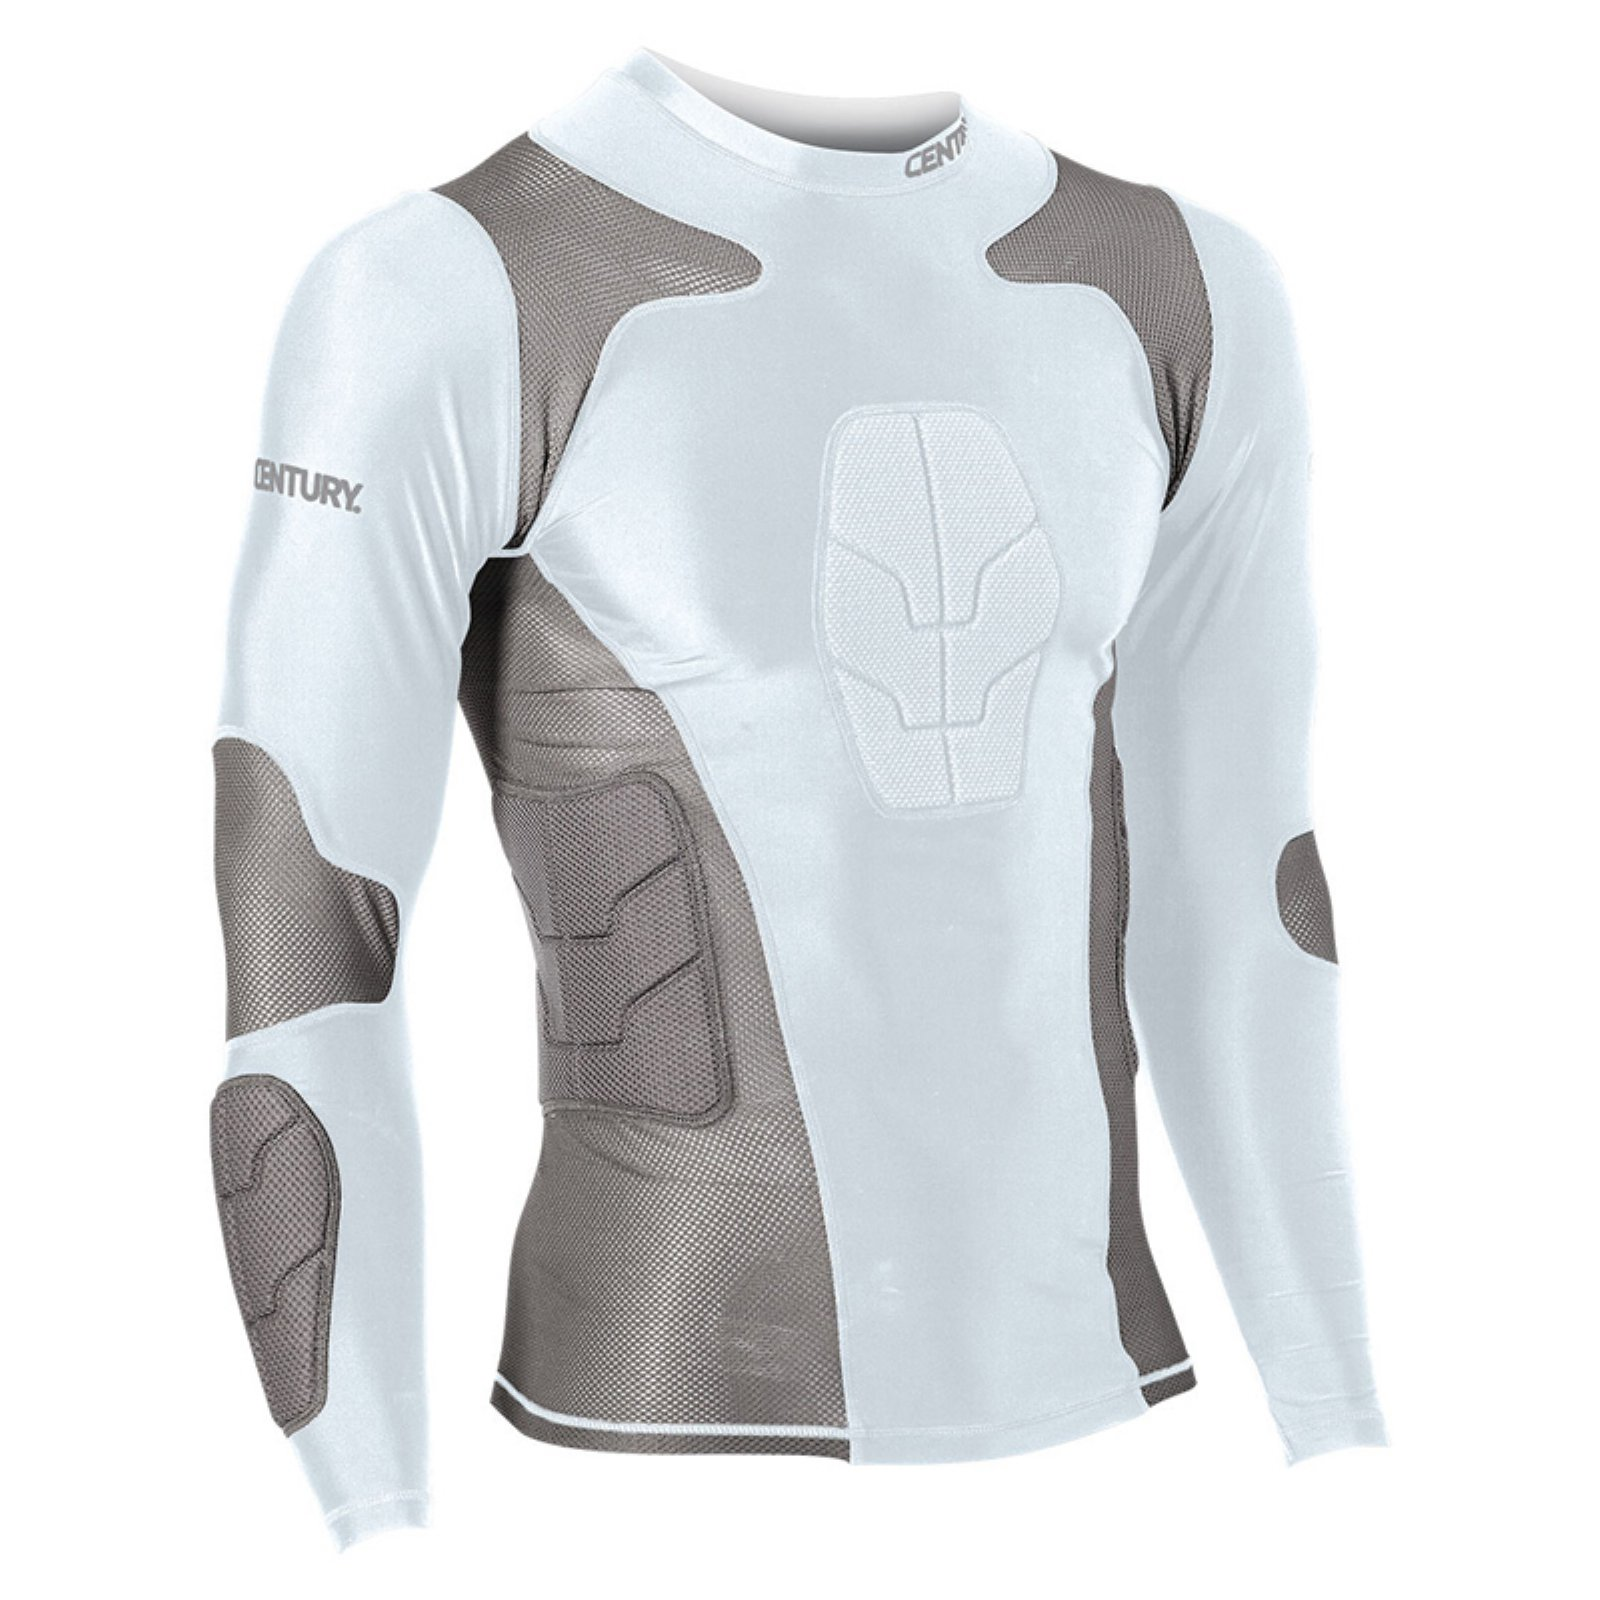 0cec515fd Century Long Sleeve Padded Compression Shirt White | Products in ...